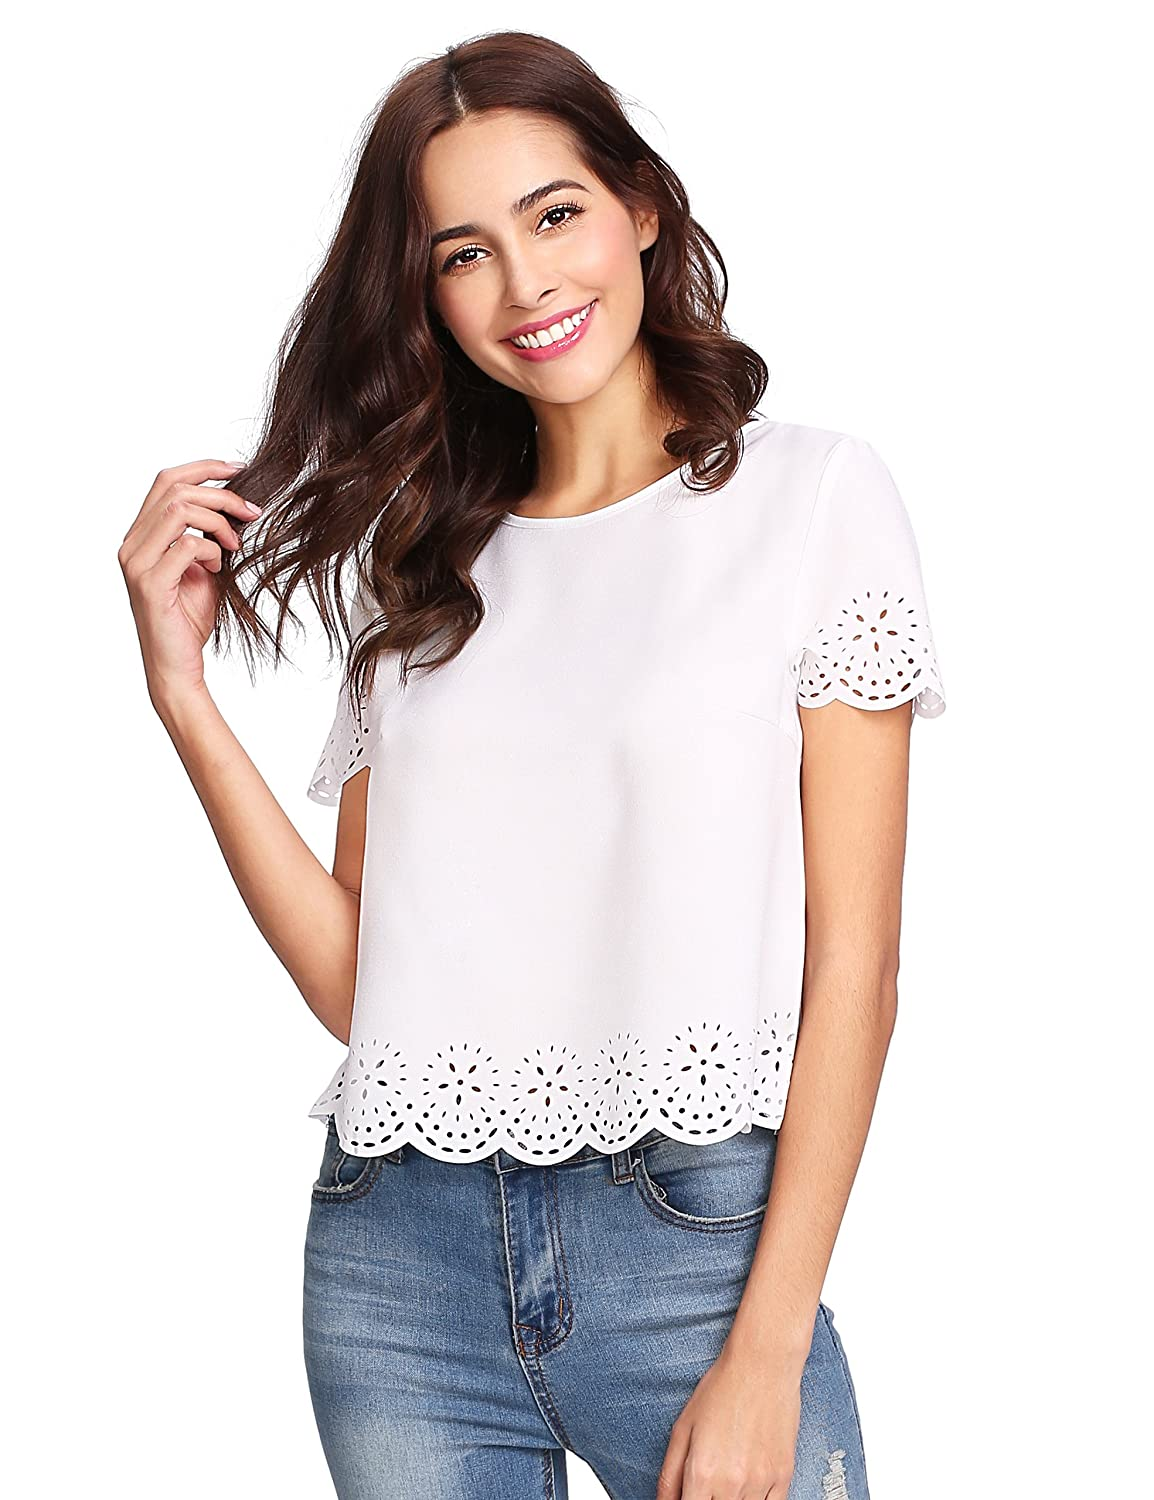 e57ee1a4f70 SheIn Women s Casual Round Neck Summer Short Sleeve Scallop T-Shirt Top  Blouse at Amazon Women s Clothing store